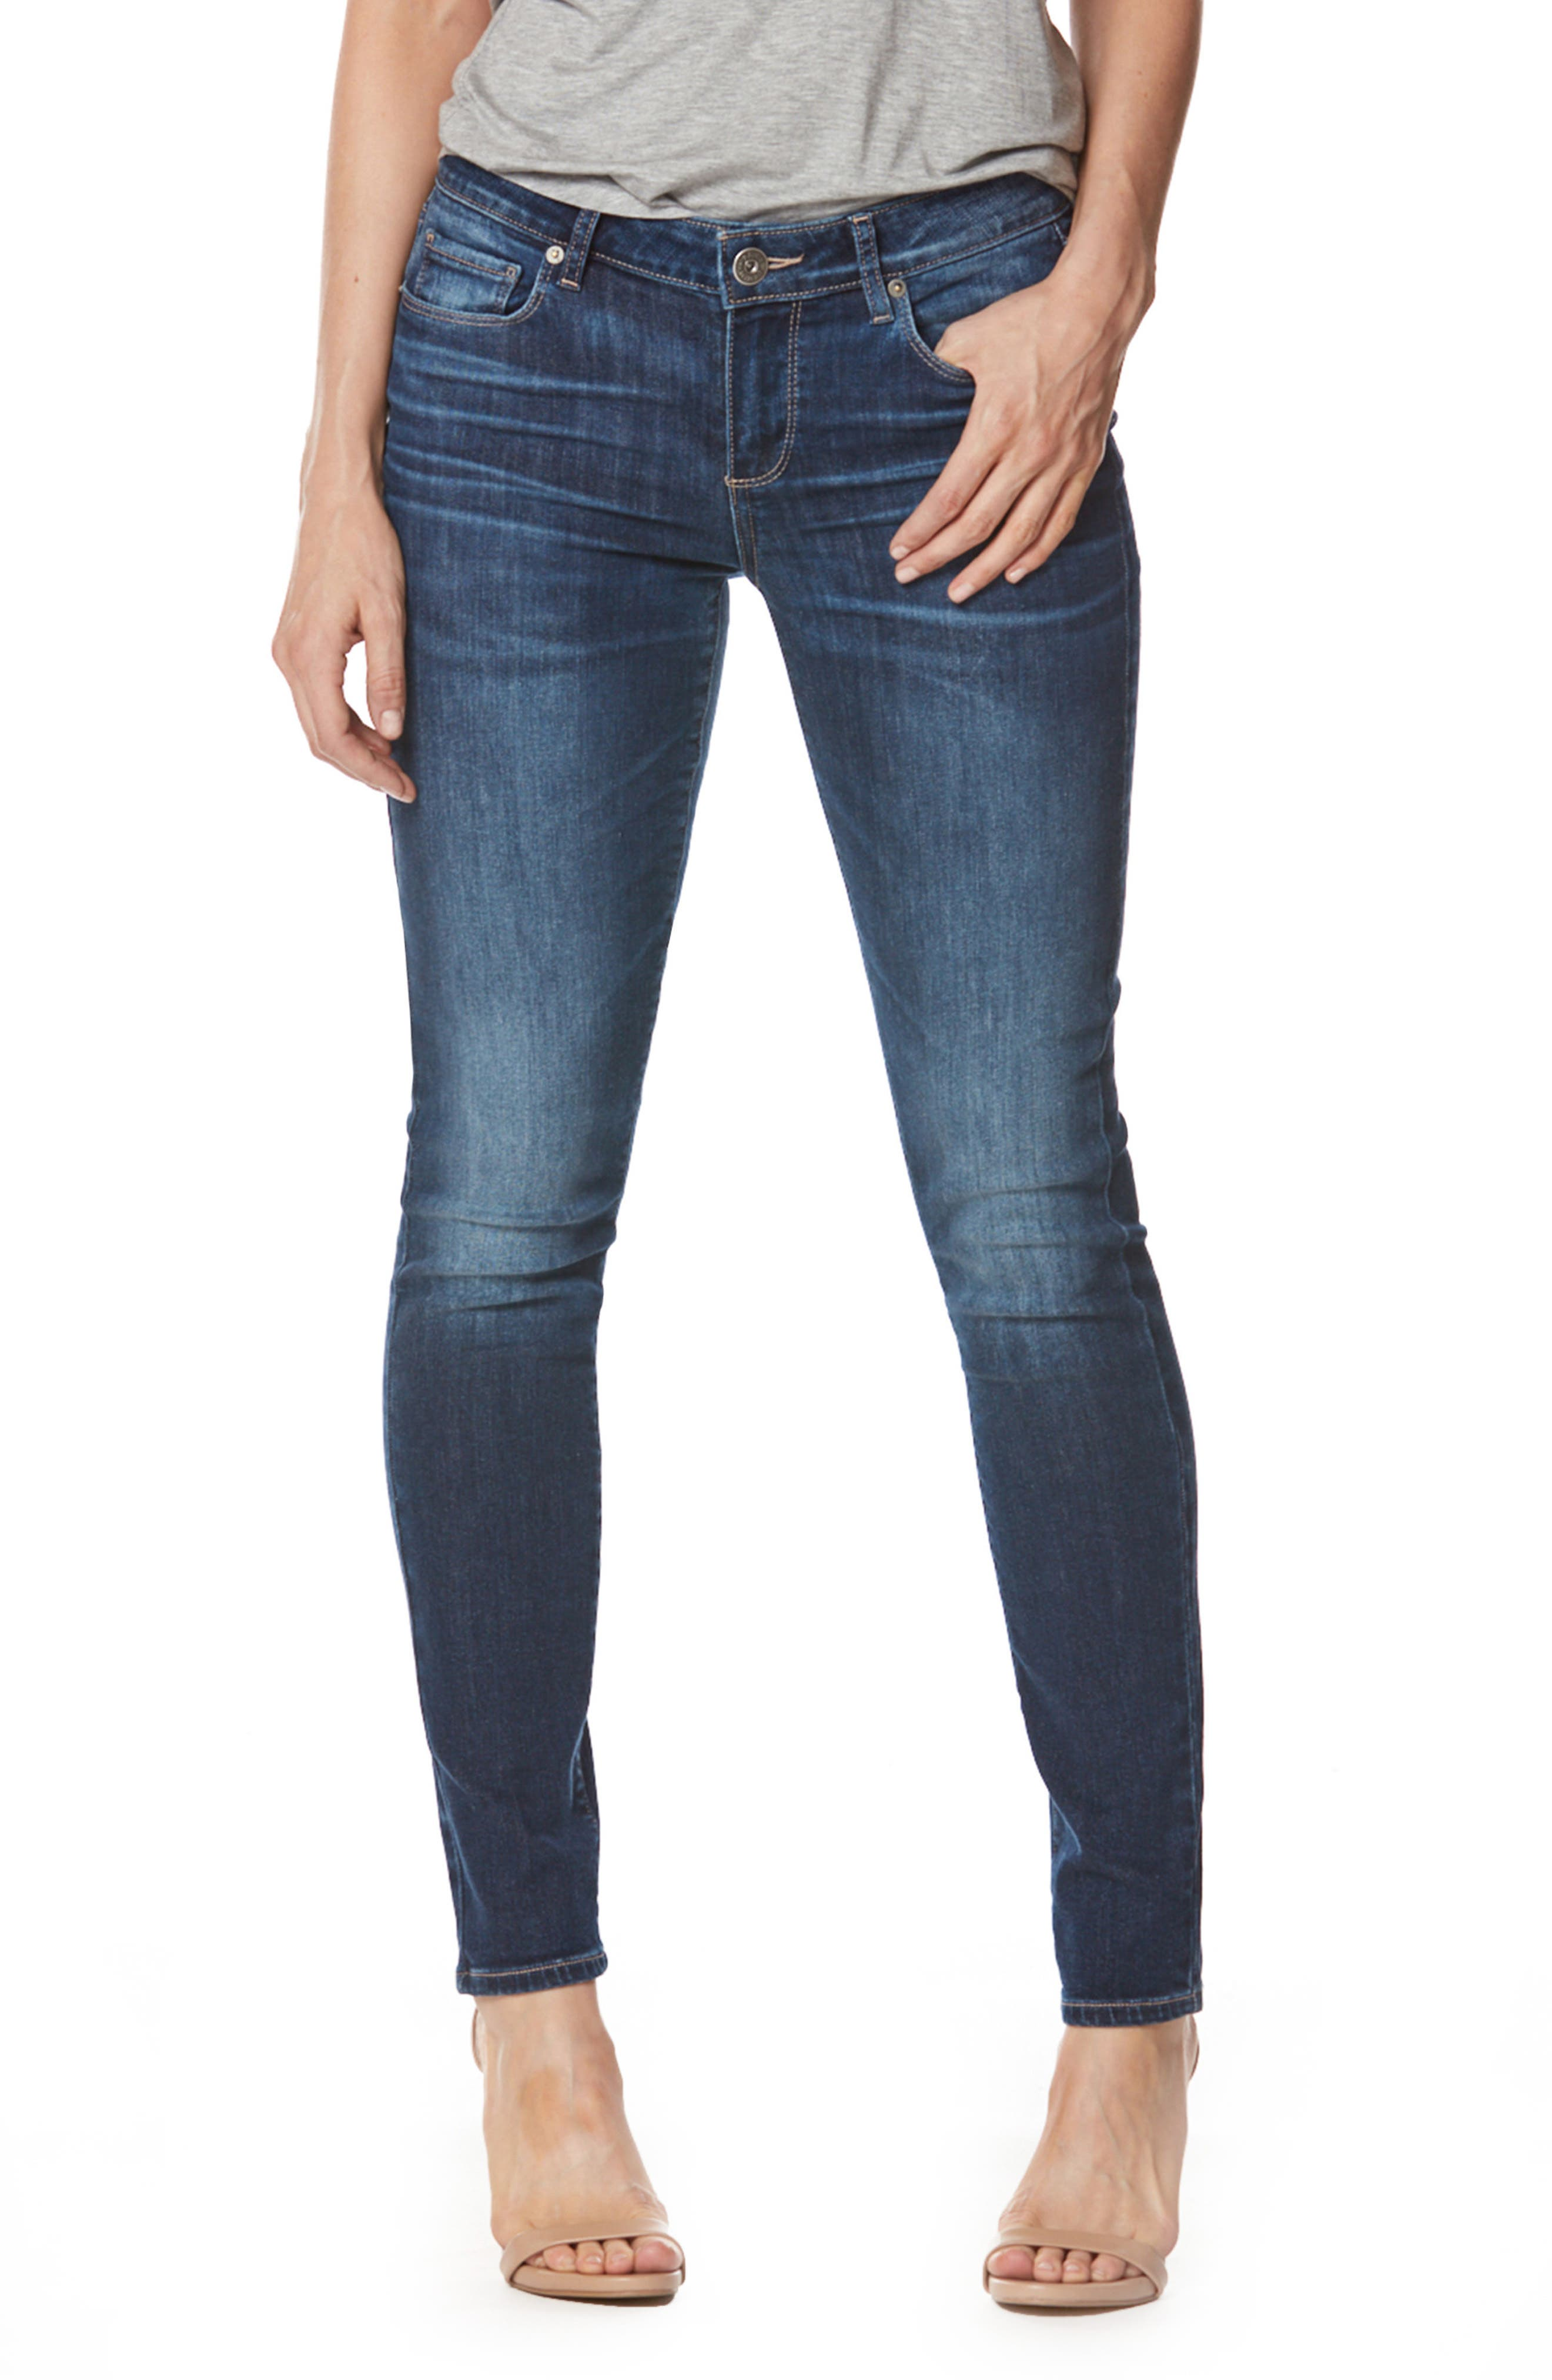 Transcend - Verdugo Ultra Skinny Jeans,                             Main thumbnail 1, color,                             400